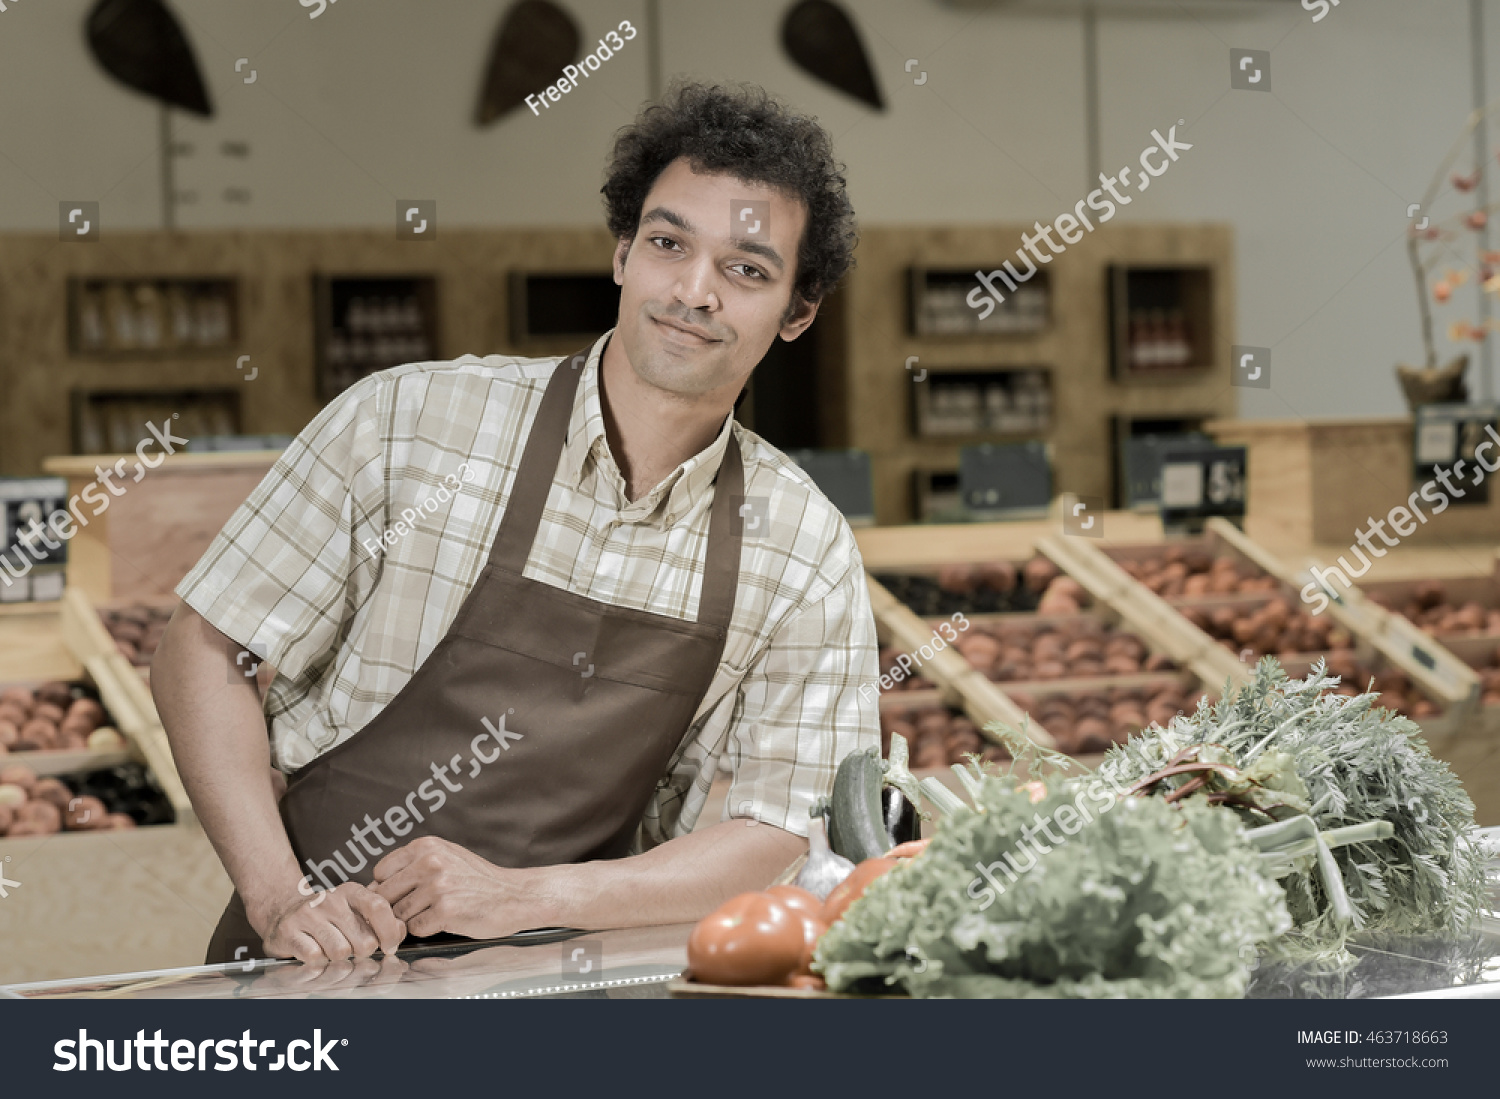 young grocery clerk working produce aisle stock photo